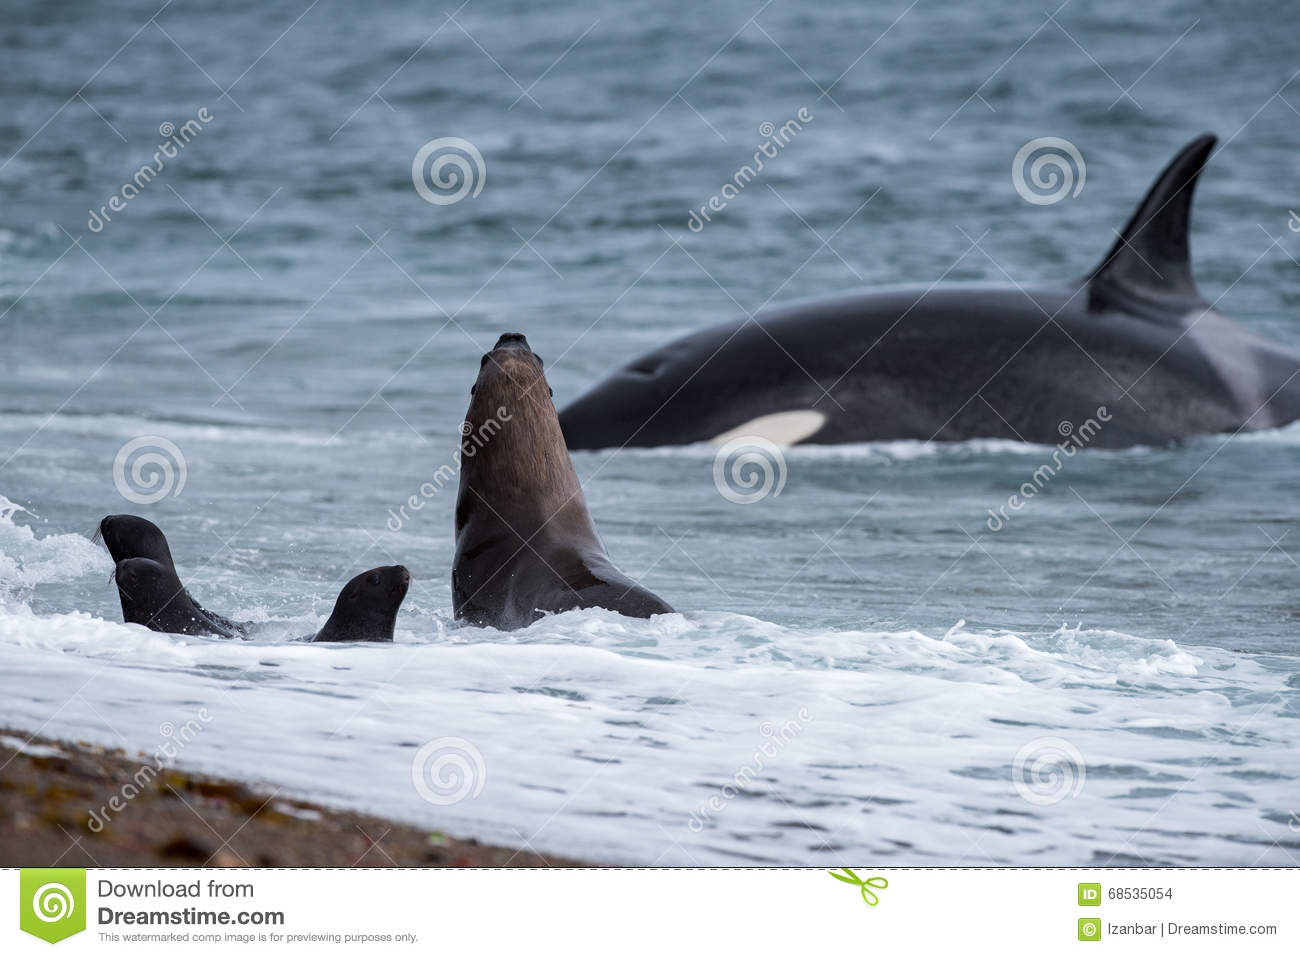 orca attack a seal on the beach stock photo - image of antarctica